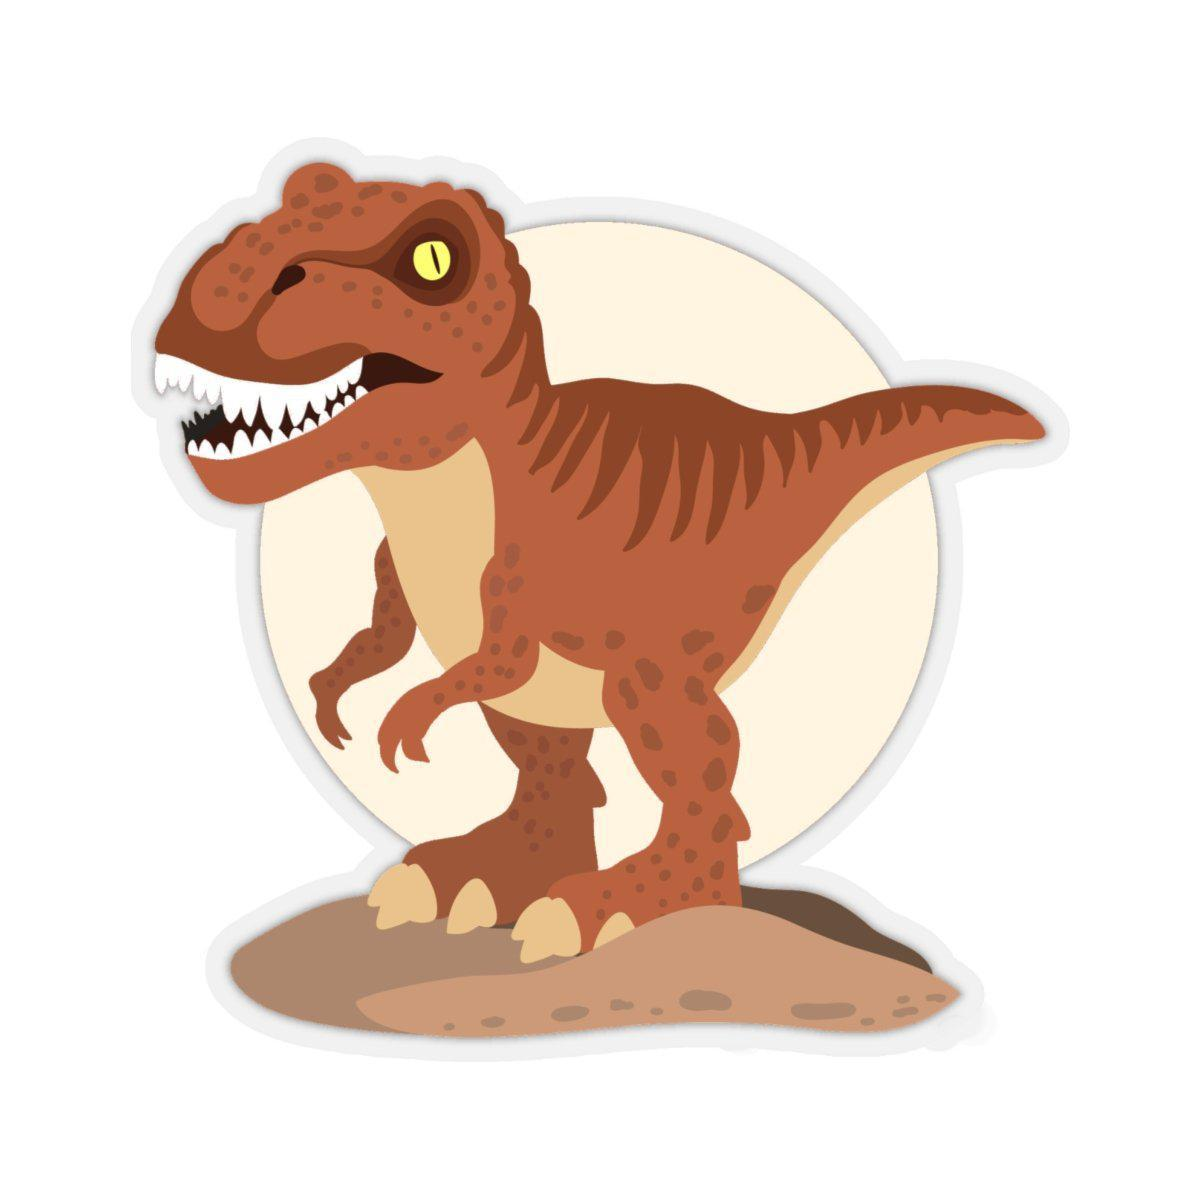 Vinyl Dinosaur Sticker